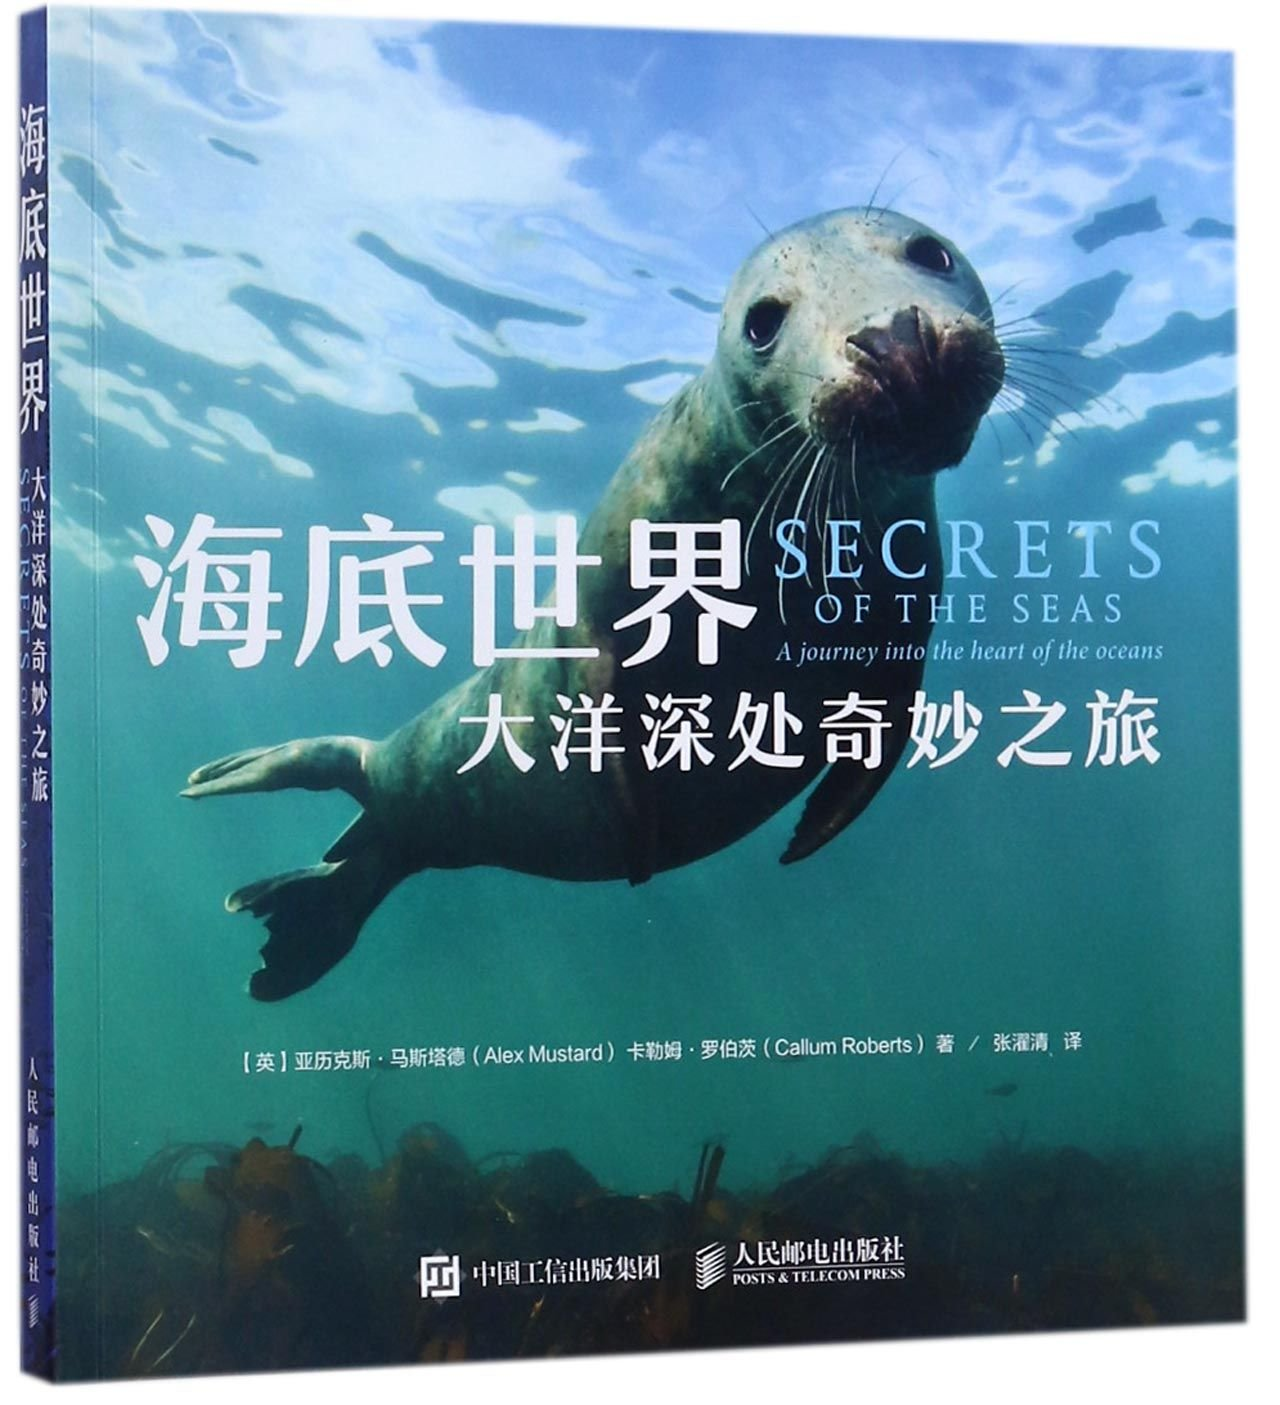 Secrets of the Seas: A journey into the heart of the oceans (Chinese Edition) ebook